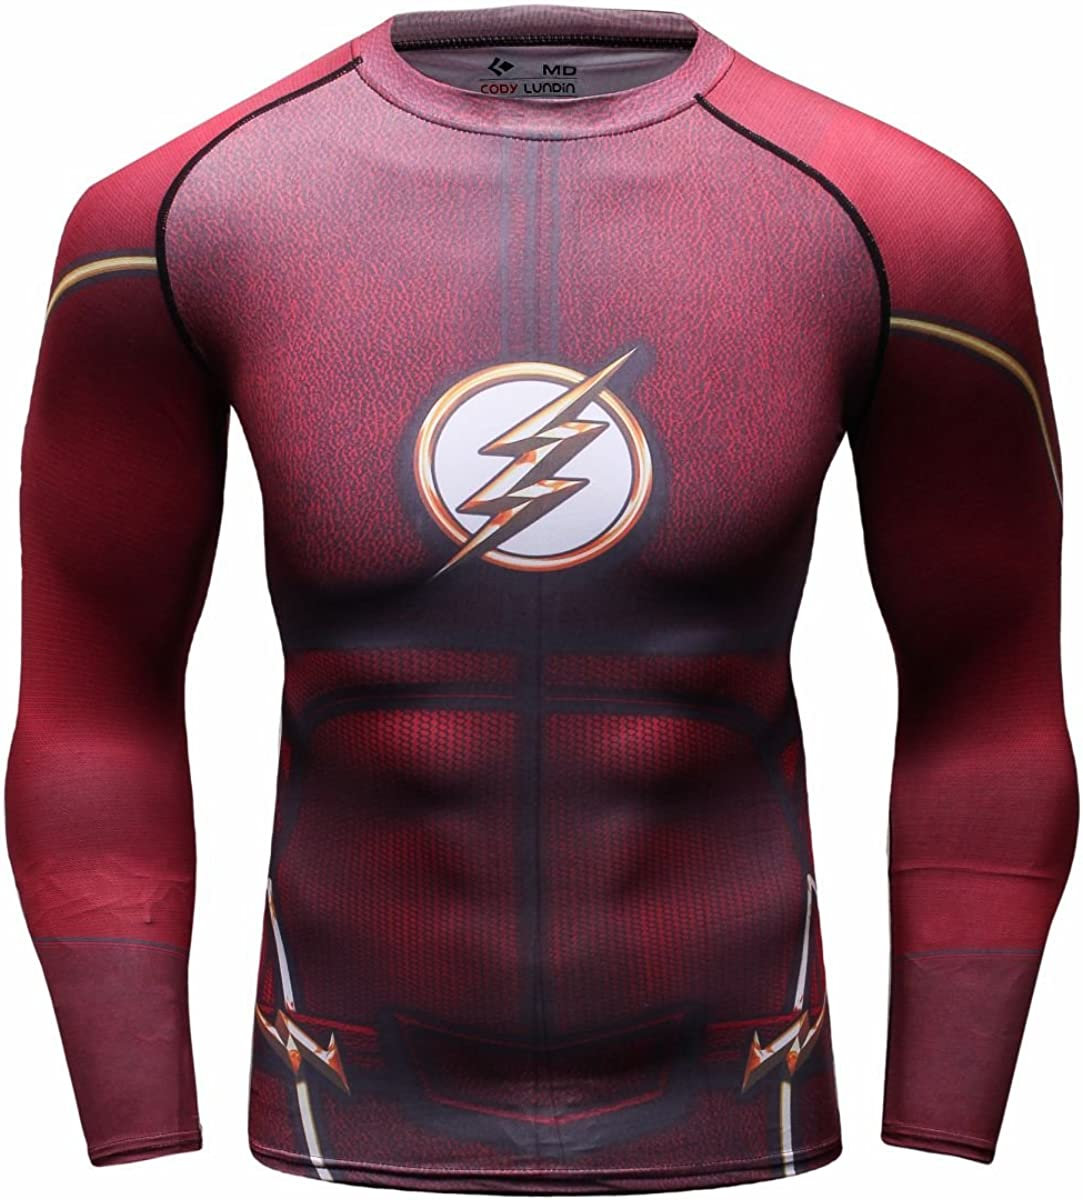 Sales of SALE items from new works Red Plume Men's Compression Sports Cool Lightning Regular discount Ru Flash Shirt